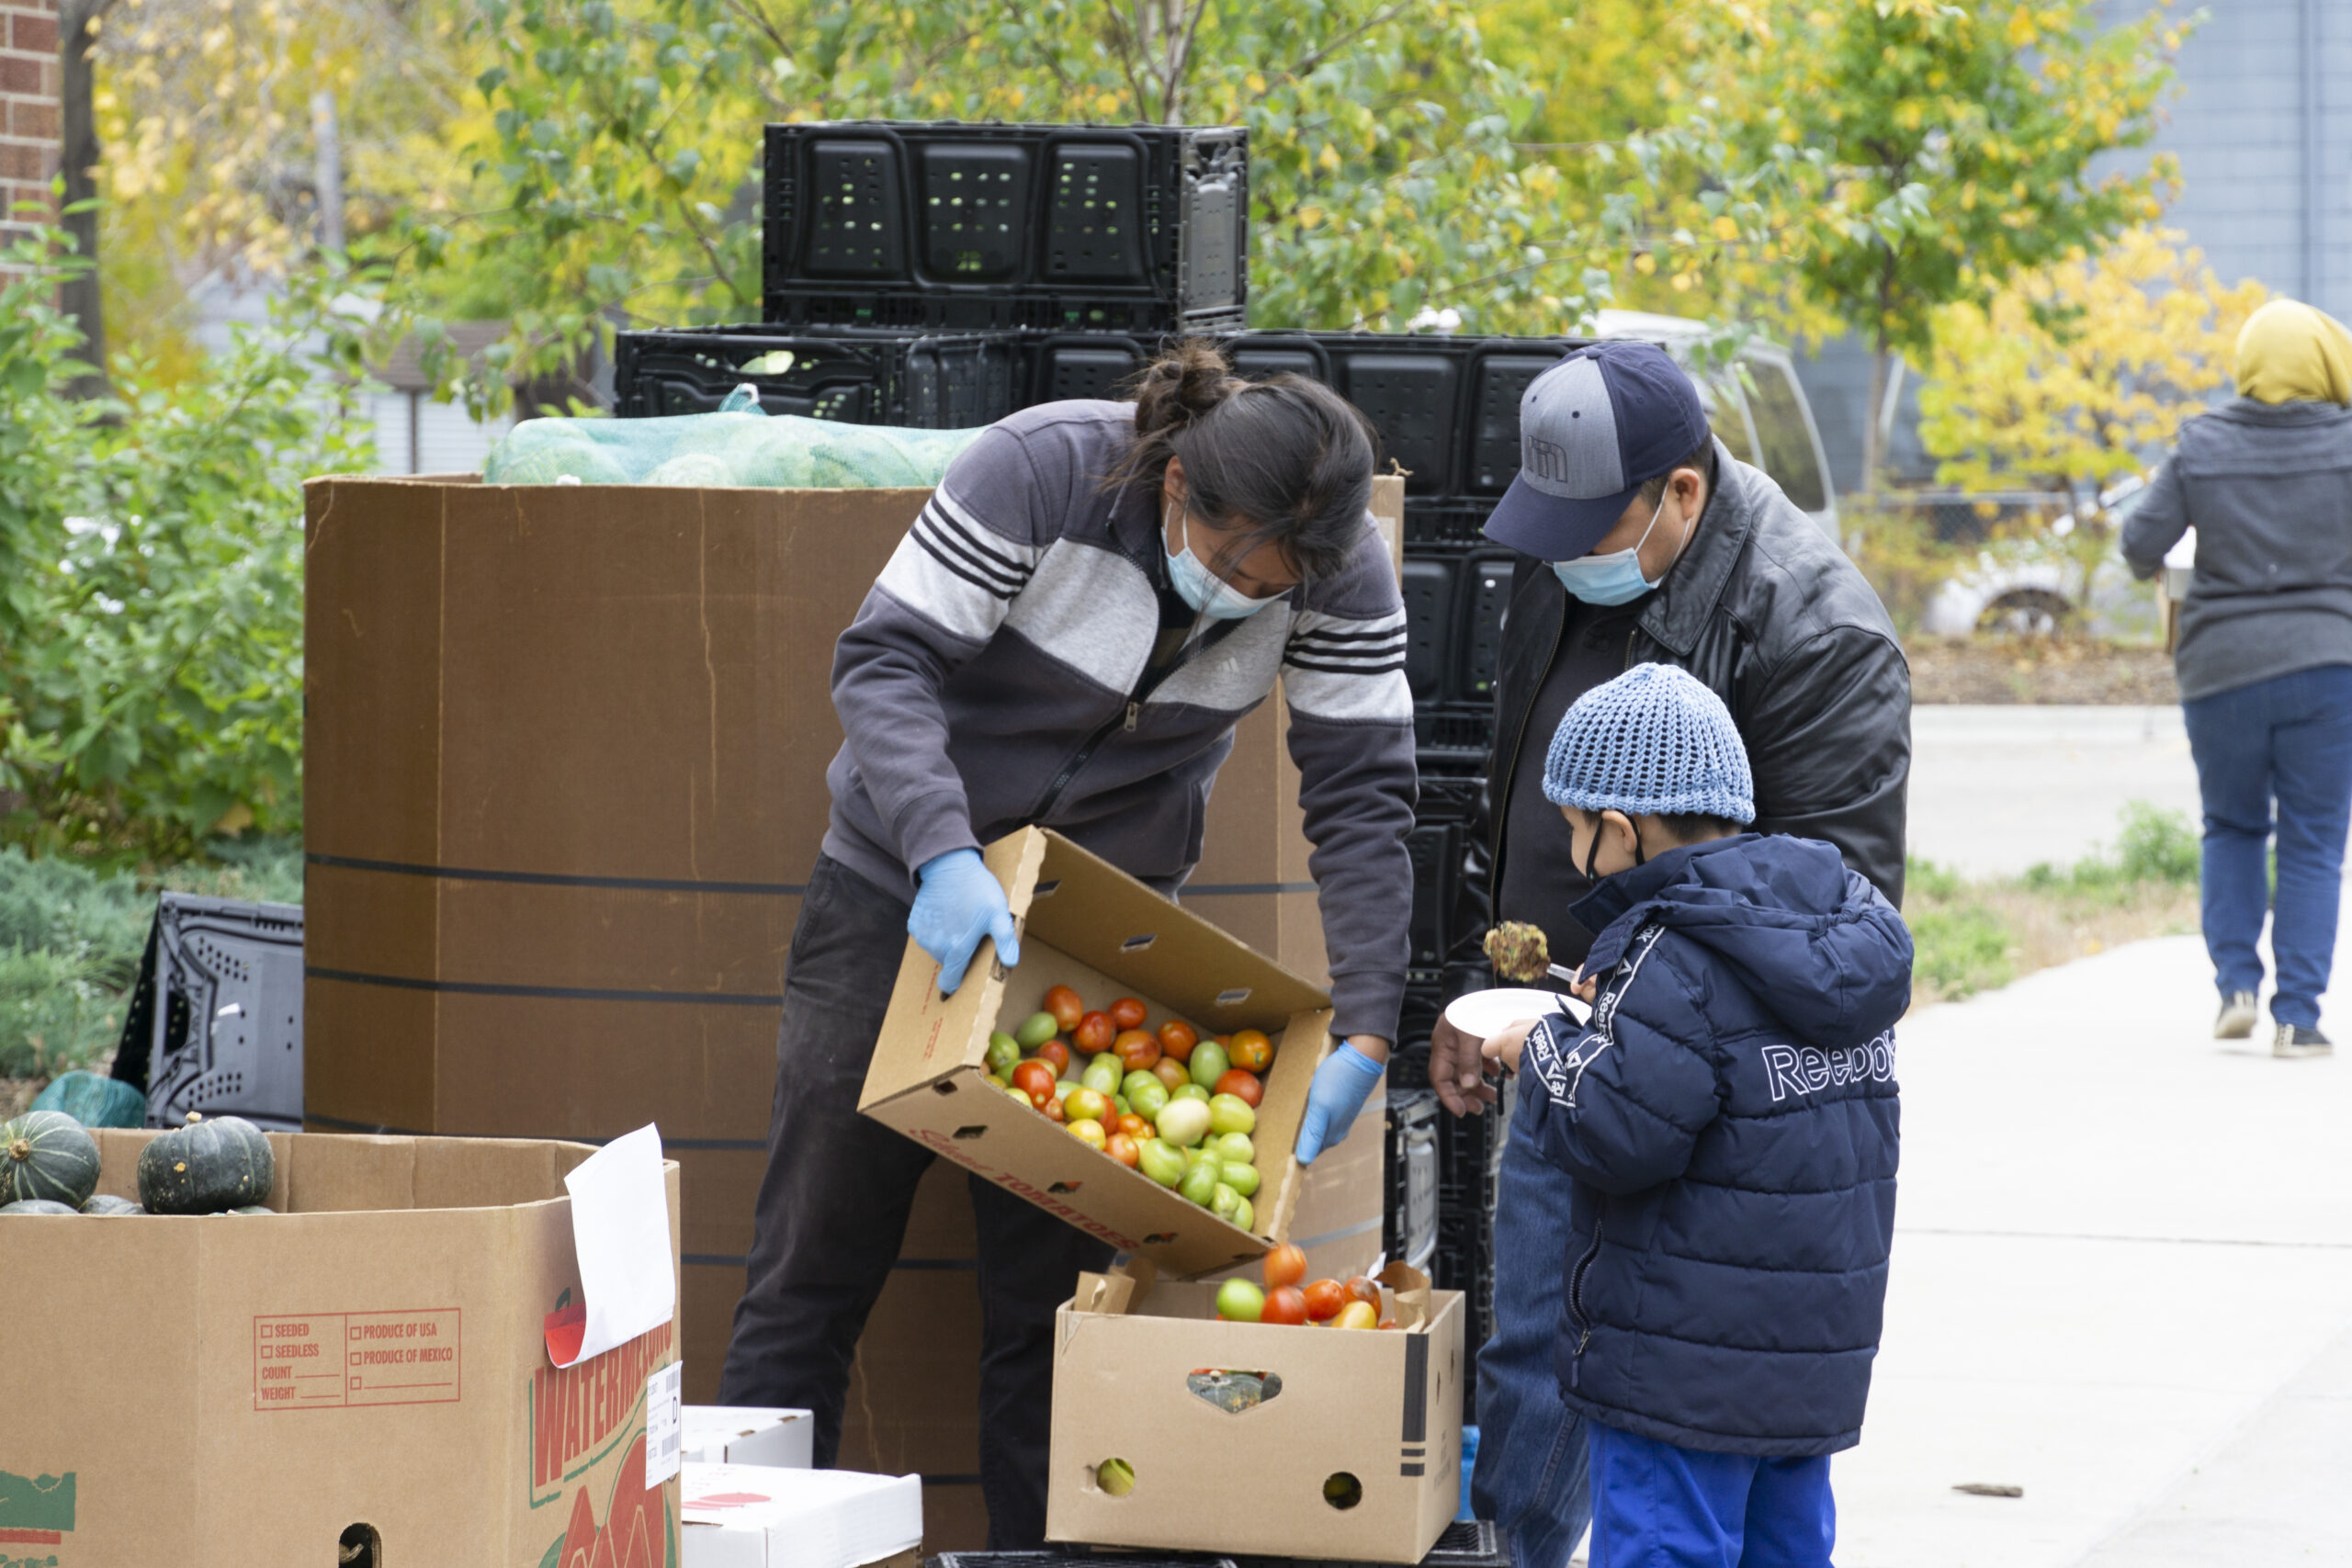 Food shelf worker distributing produce to community members